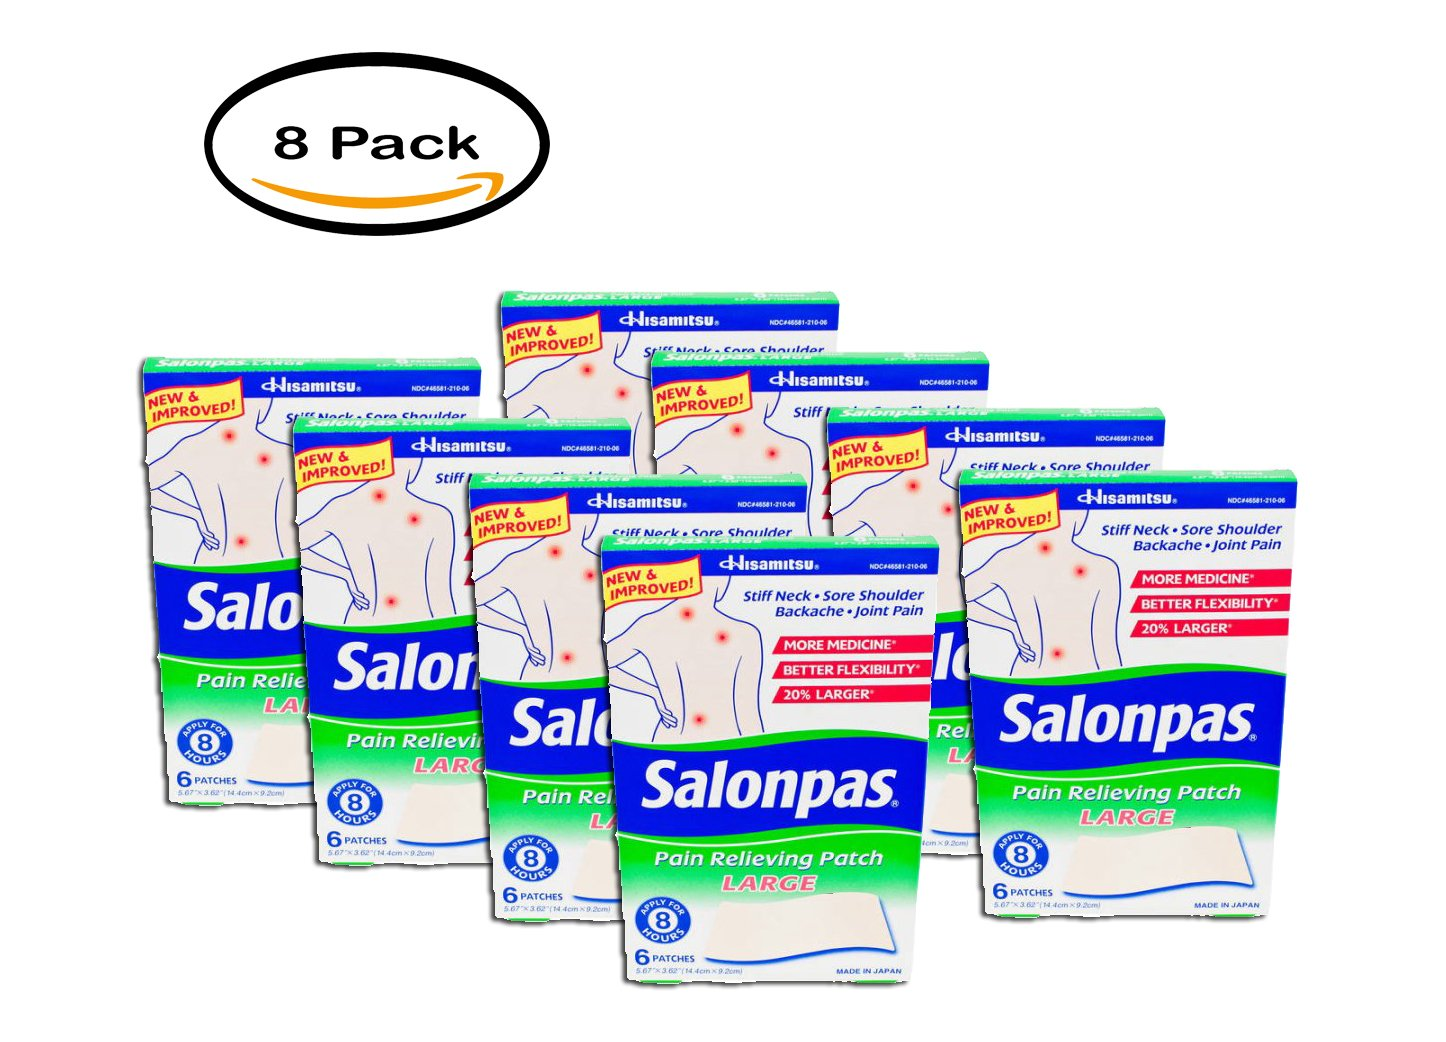 PACK OF 8 - Salonpas Large Pain Relieving Patches, 8 ct